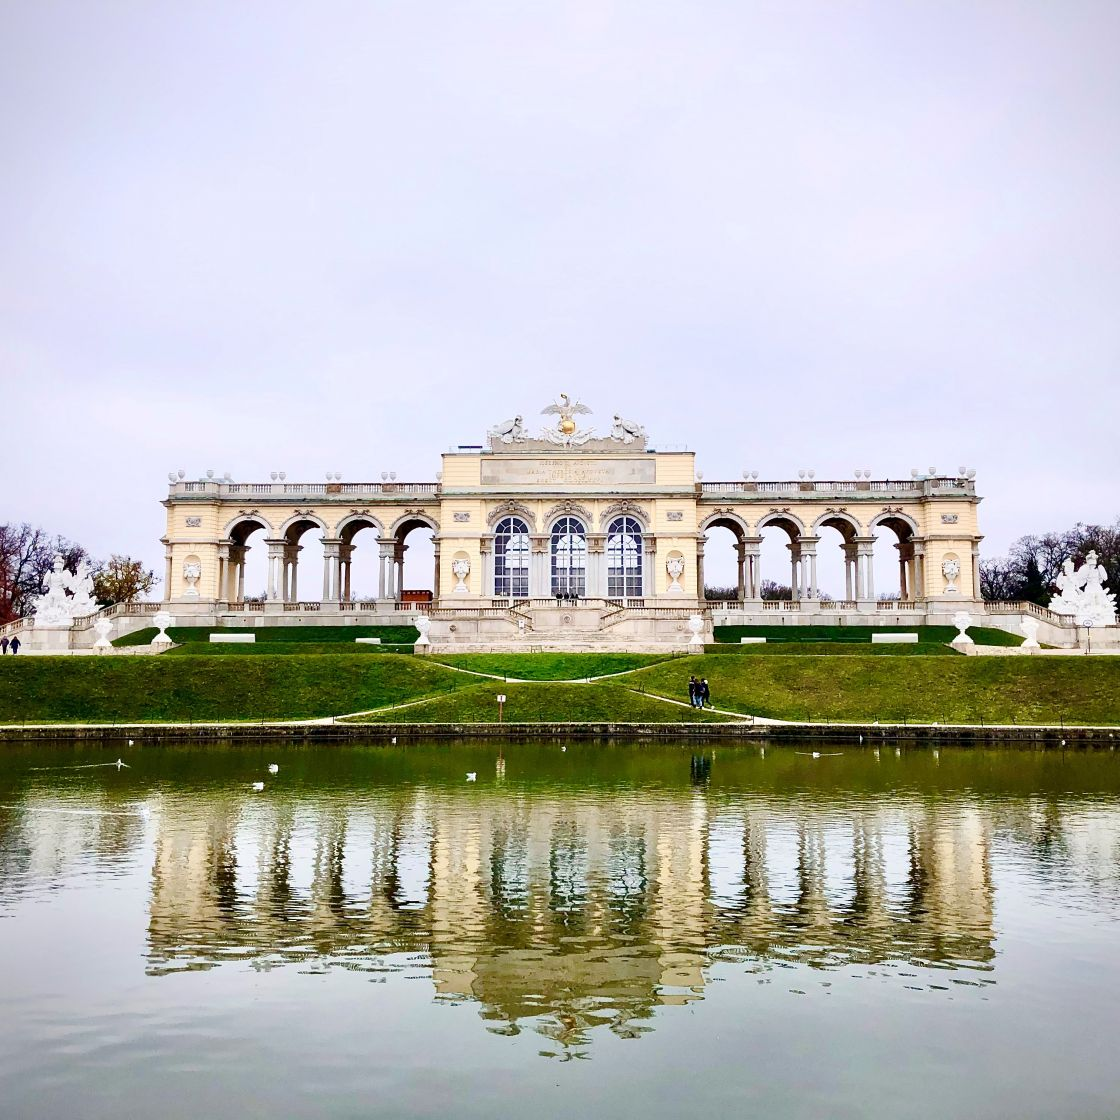 The Gloriette in the Schönbrunn Palace Garden, Vienna, Austria